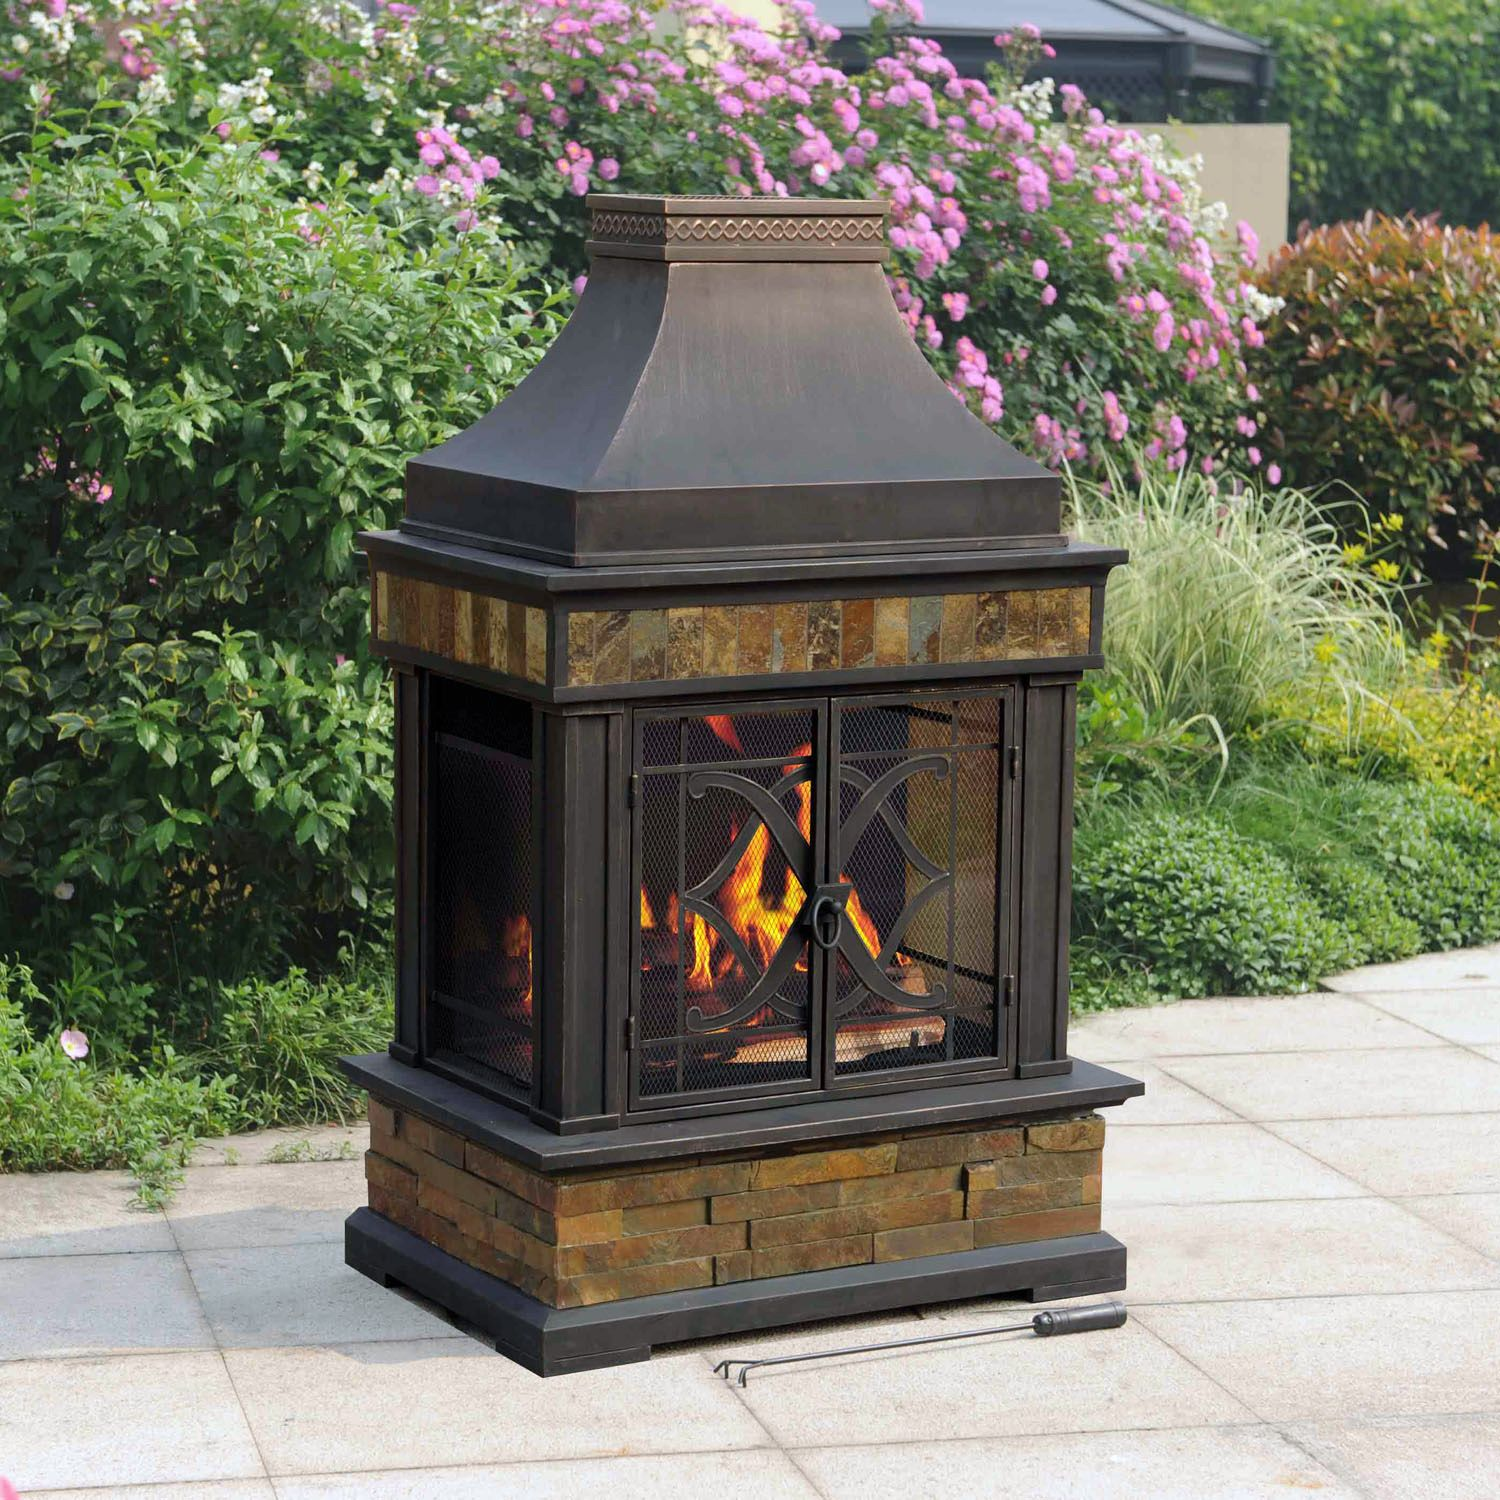 Chimney Outdoor Fire Pit | FIREPLACE DESIGN IDEAS